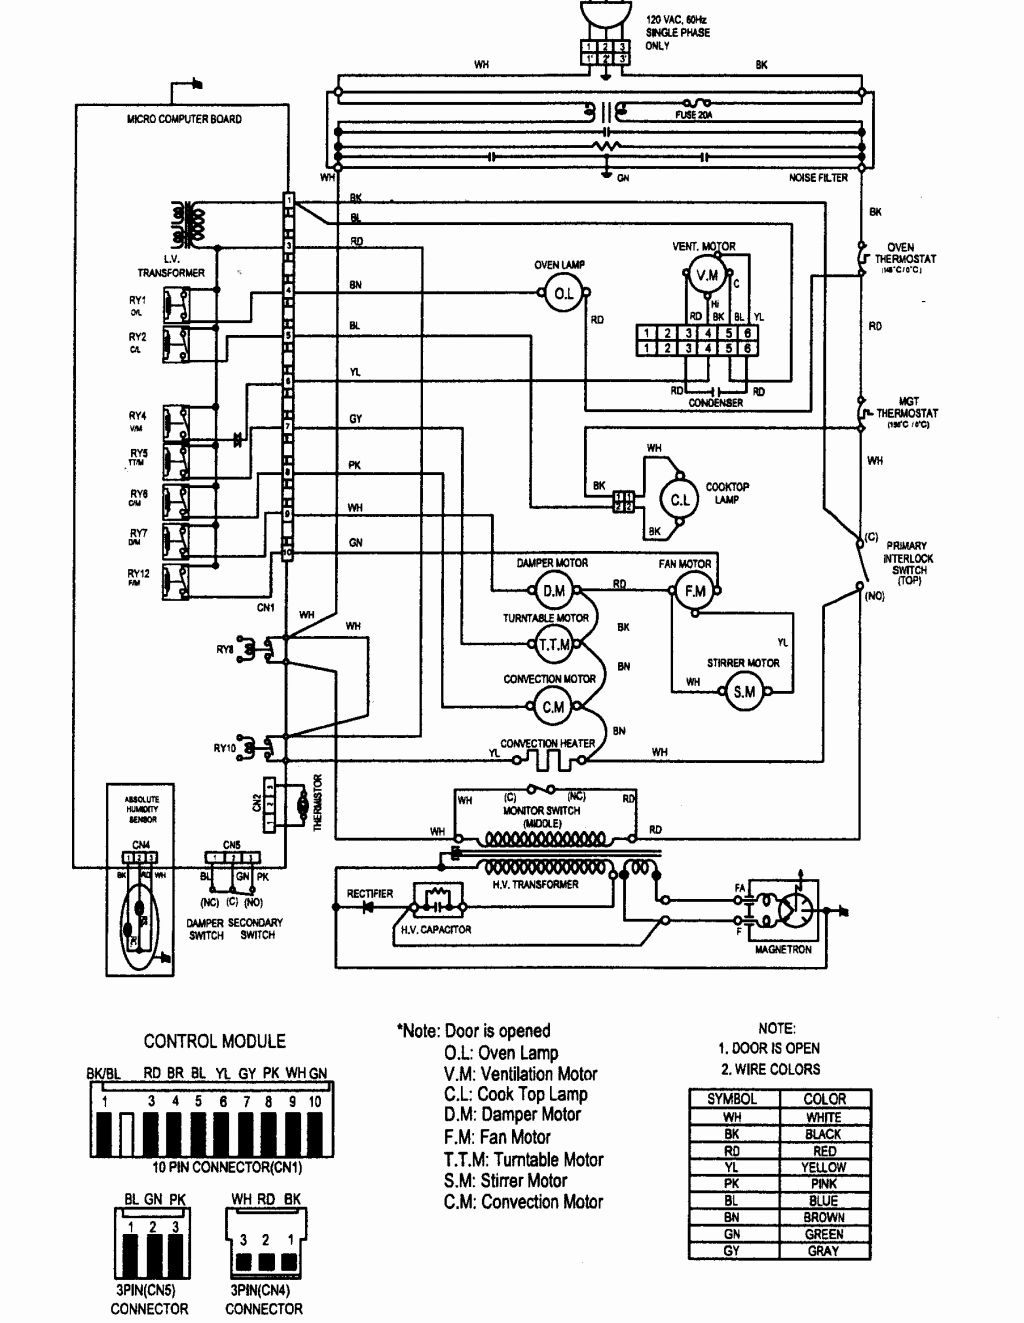 kenmore side by side refrigerator wiring diagram Download-Size of Wiring Diagram Kenmore Elite Refrigerator Wiring Diagram Lovely Wiring Diagram For Kenmore 2-o